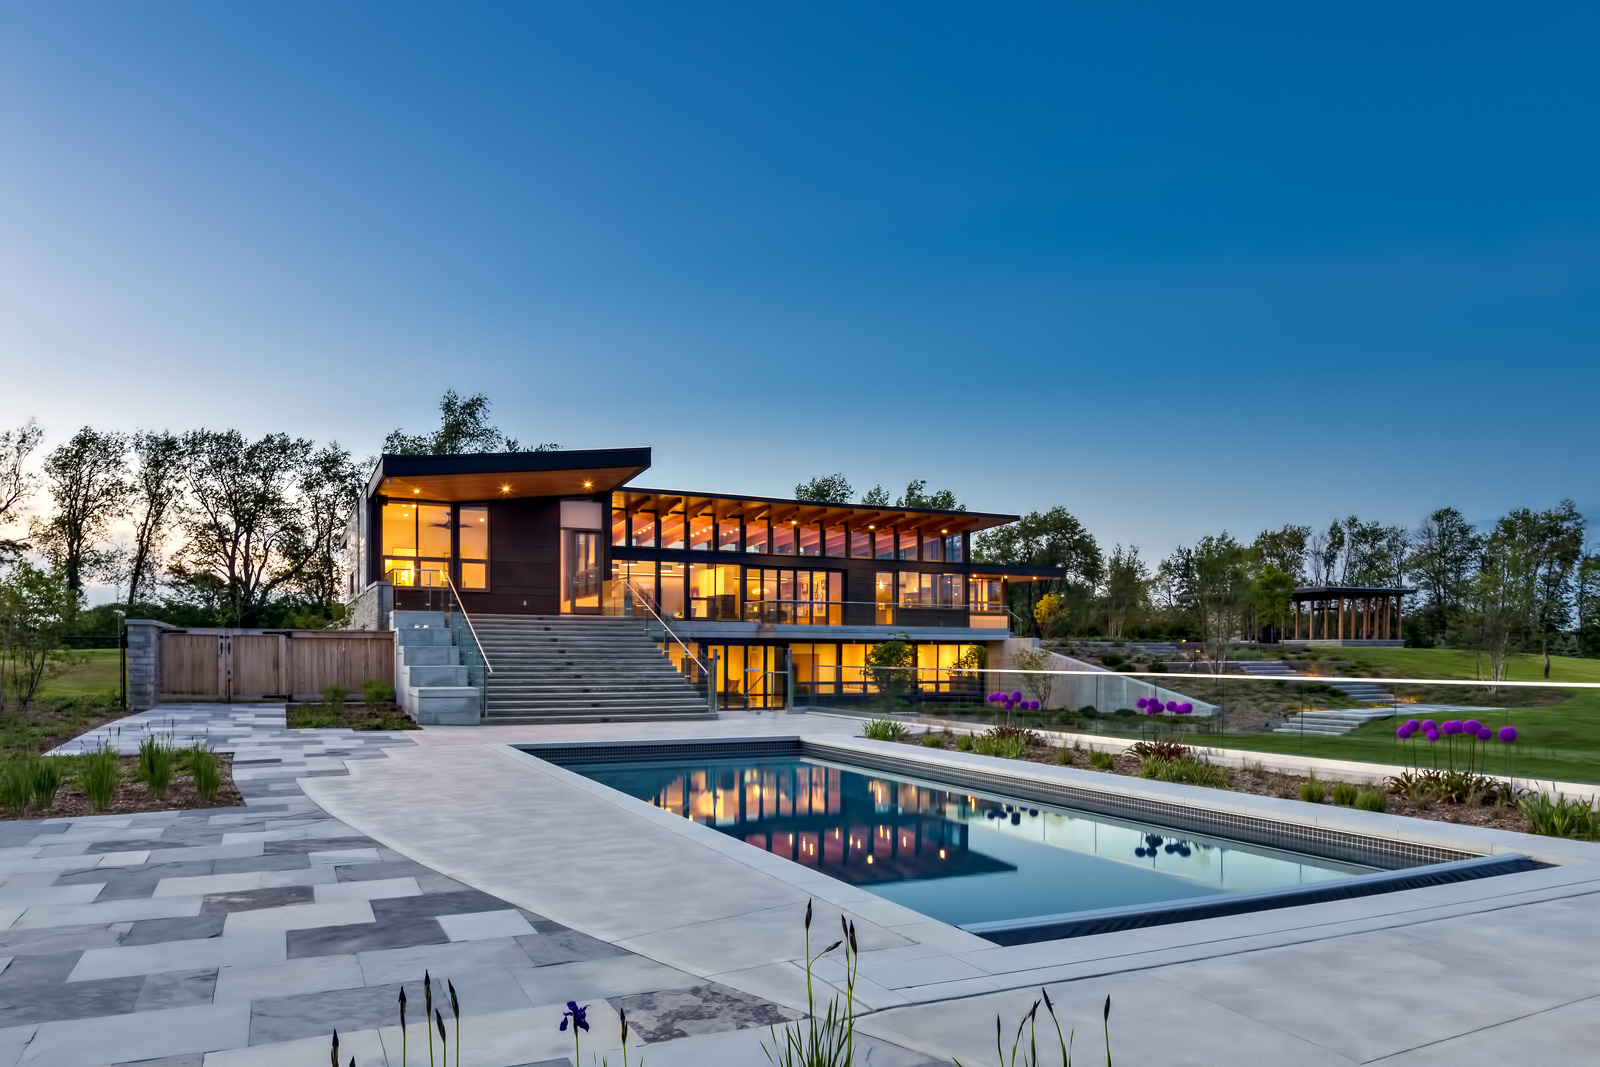 Millgrove House Luxury Residence - Hamilton, ON, Canada